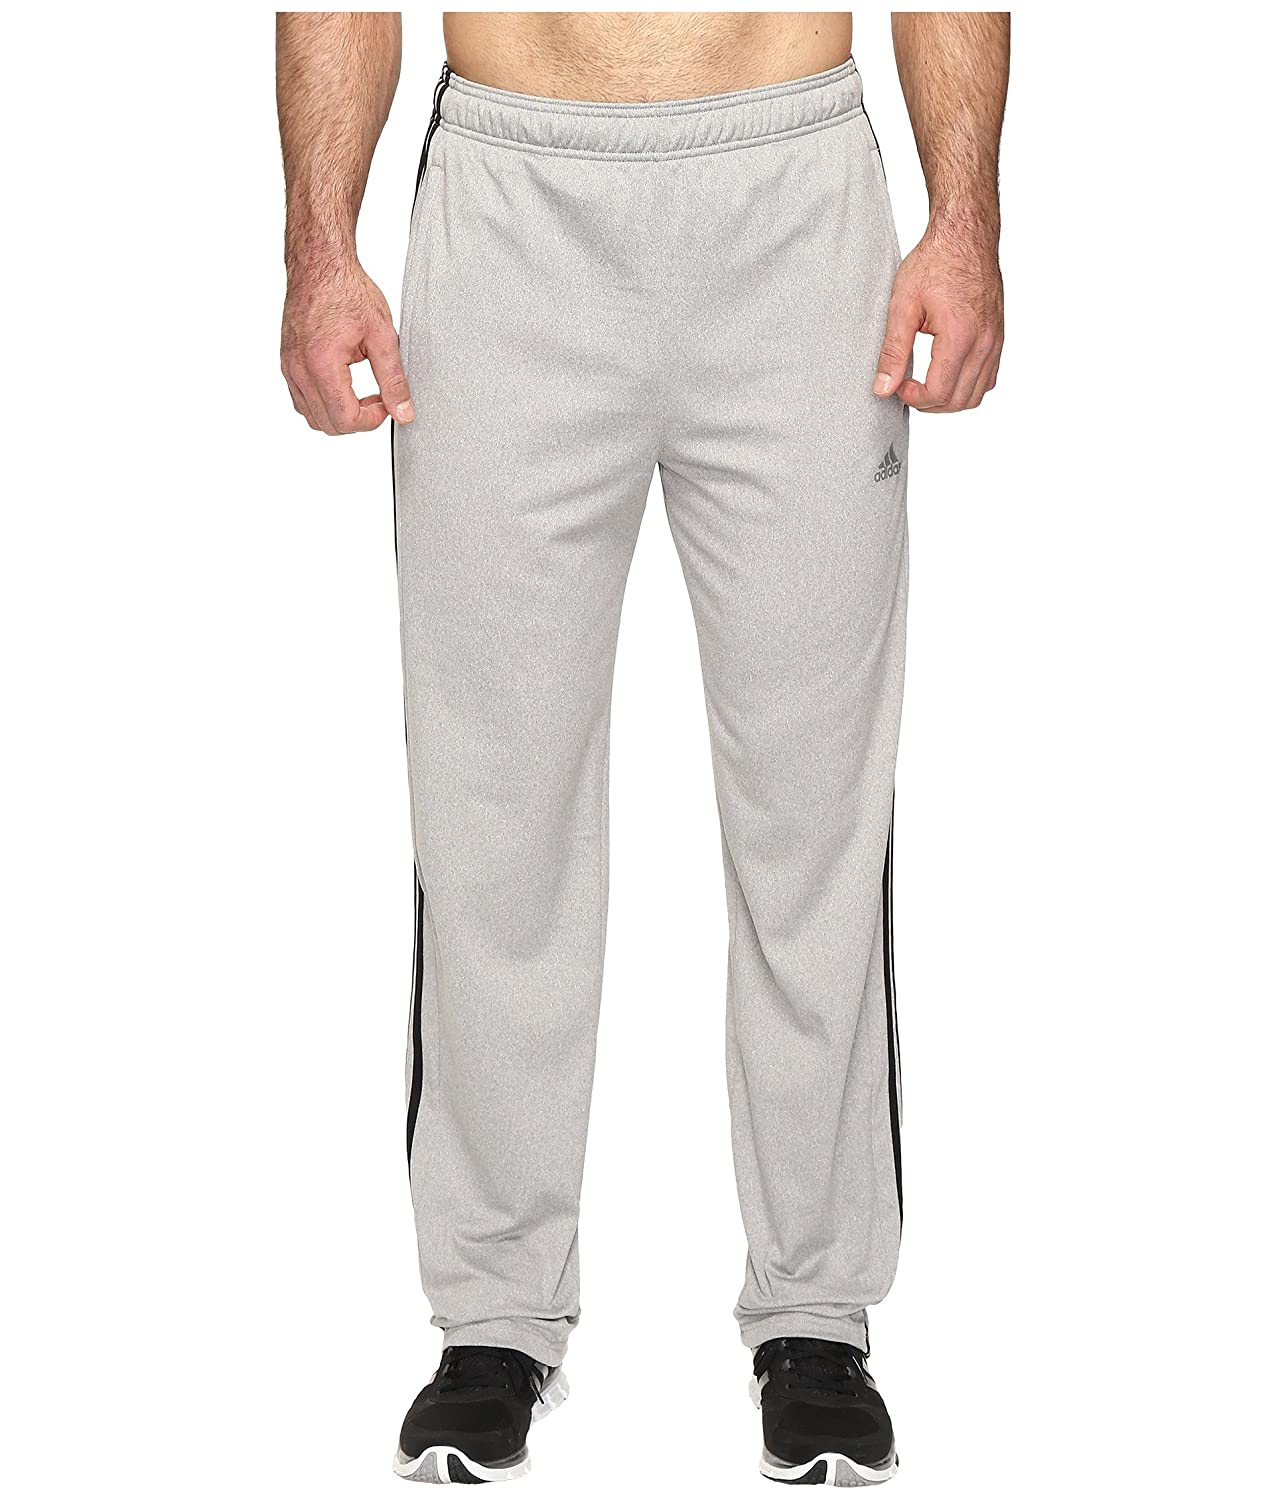 77a73a0687cc Amazon.com  adidas Men s Essentials Track Pants (Extended Sizes)  Sports    Outdoors